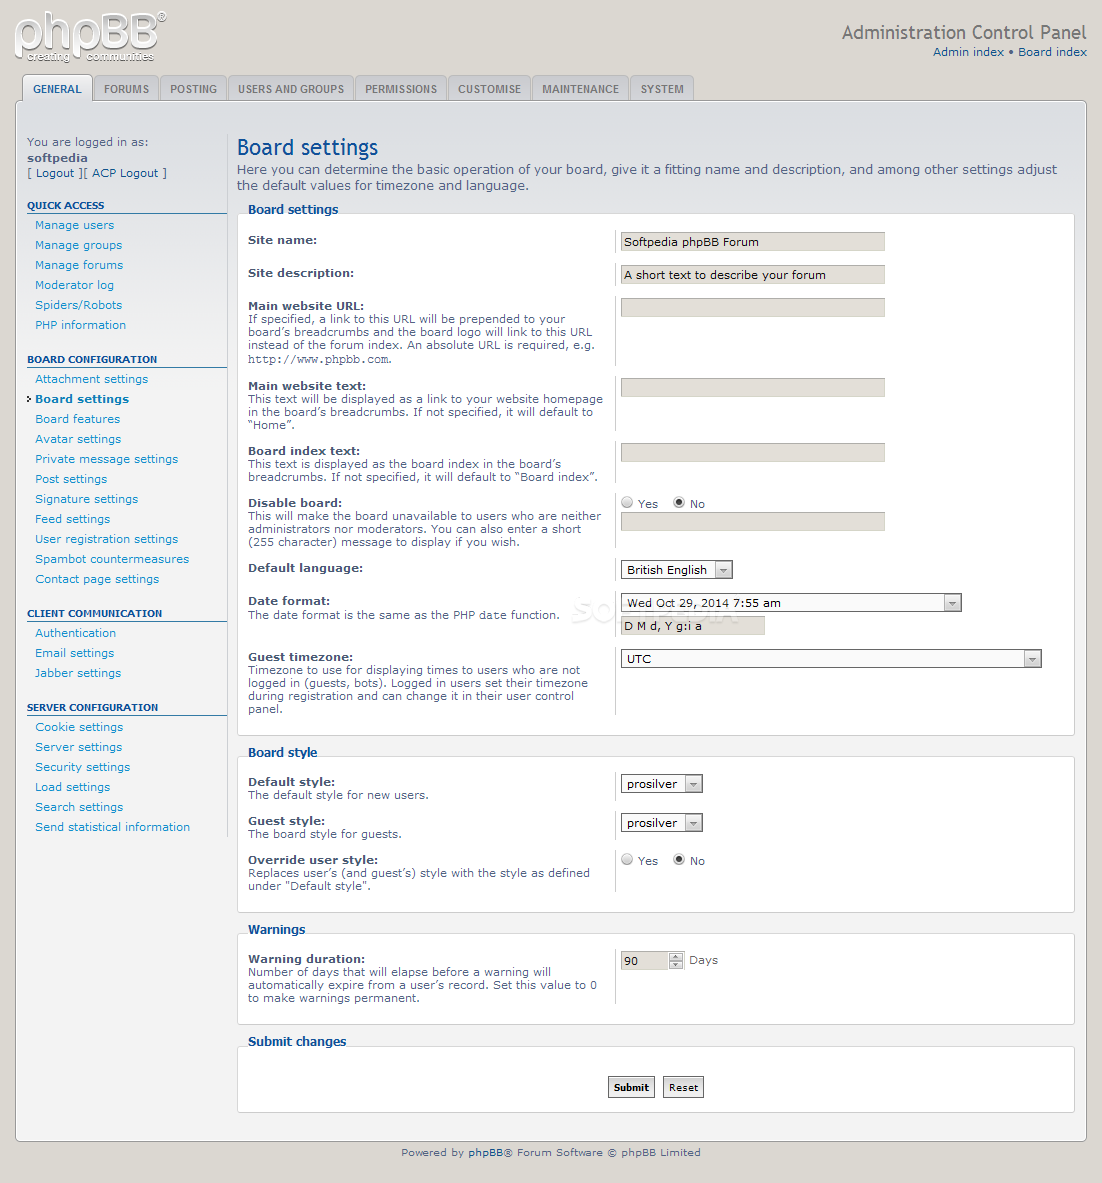 phpBB - Anything can be edited, from attachment to board, avatar, PM, signature, and feed settings